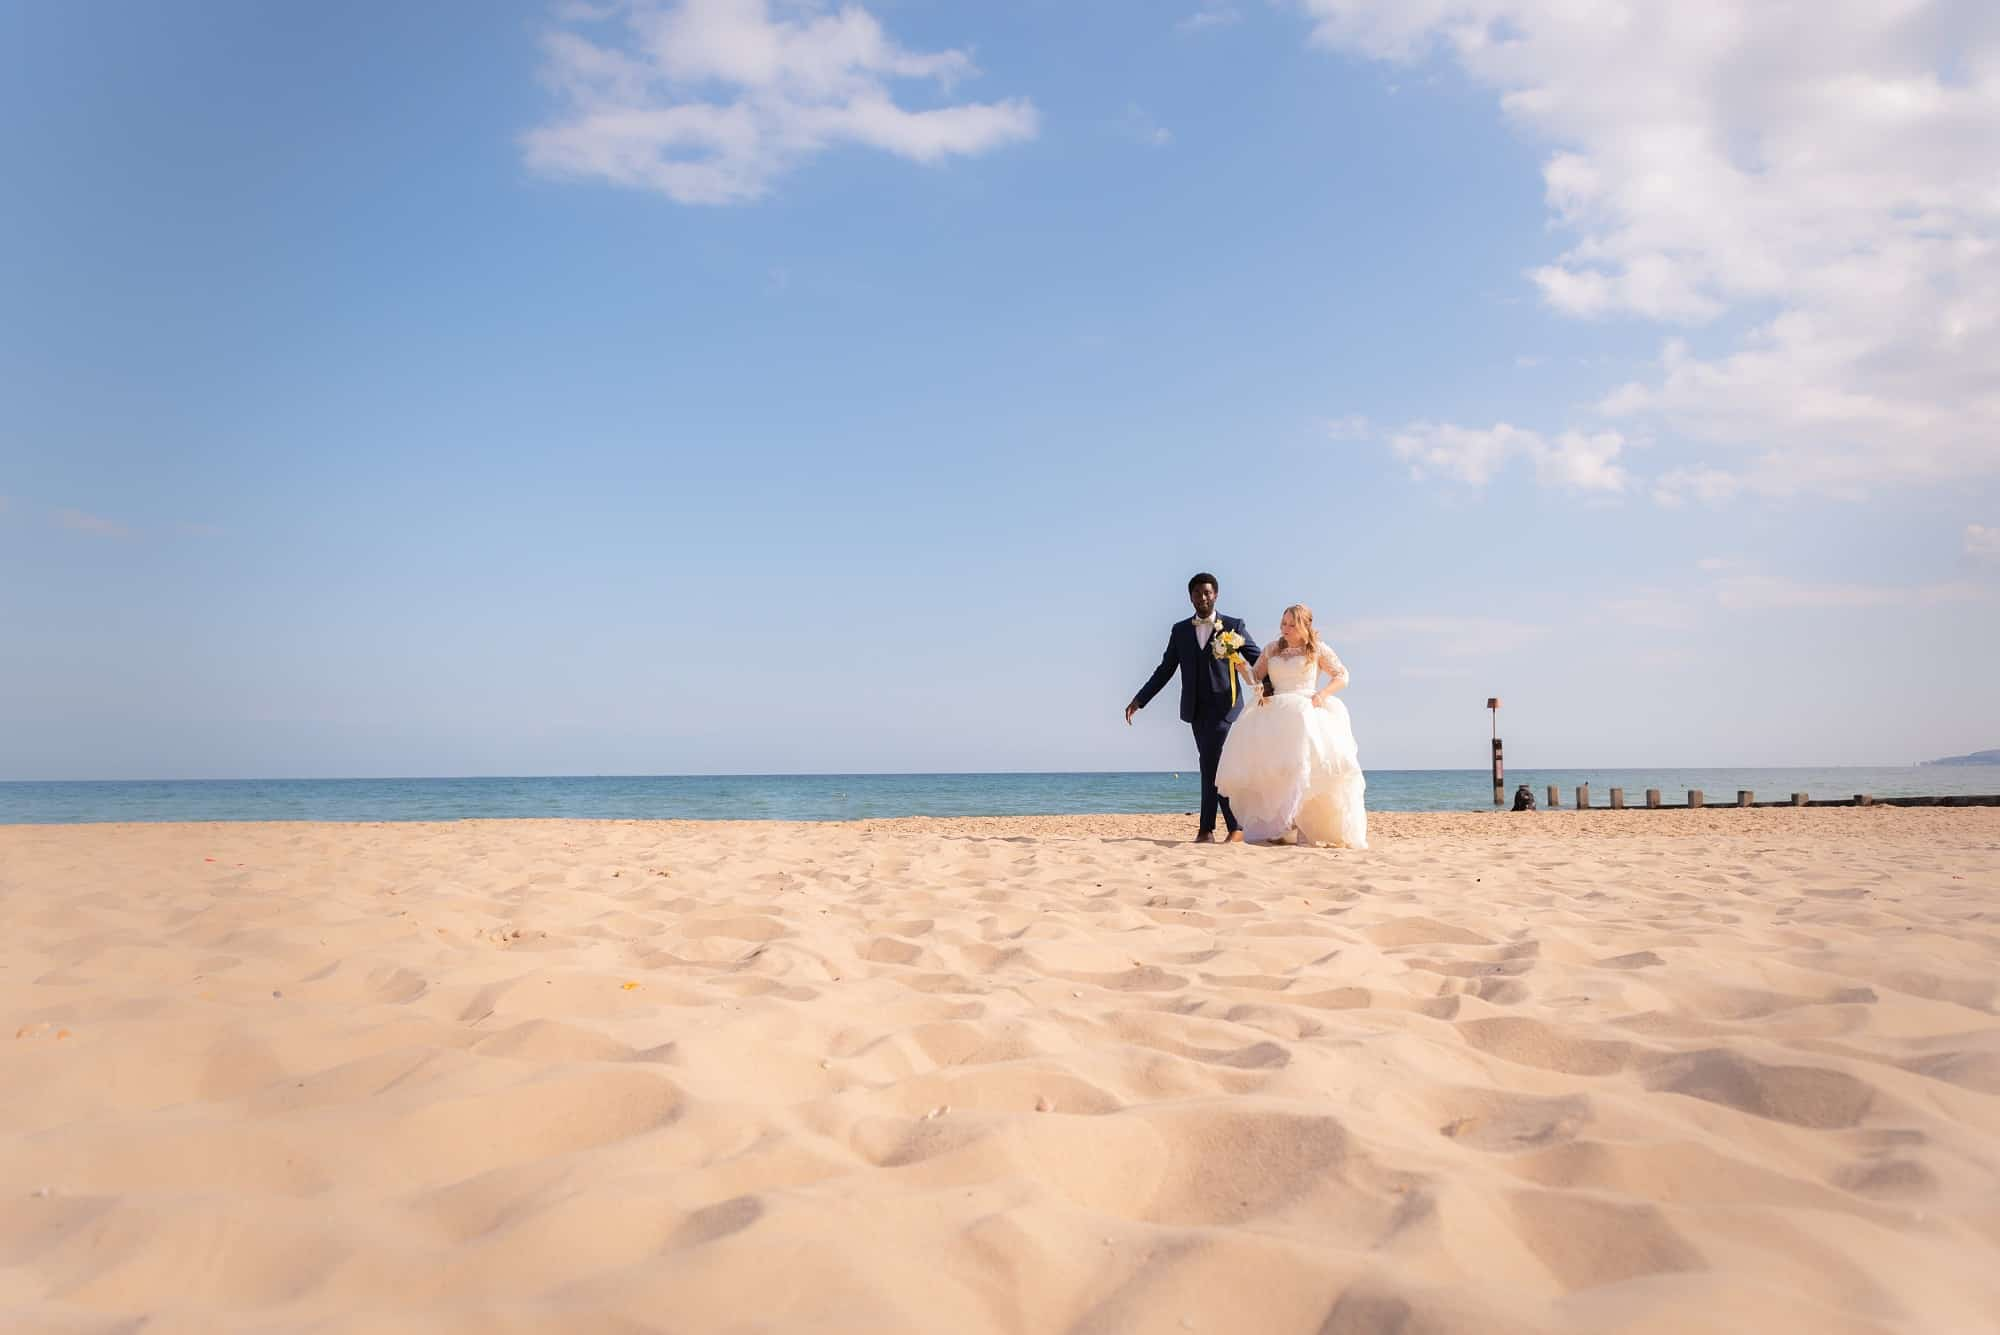 bride and groom having couple shots are their wedding ceremony on Bournemouth Beach in Hampshire. Walking along the sand, holding hands on a bright and sunny day in Hampshire